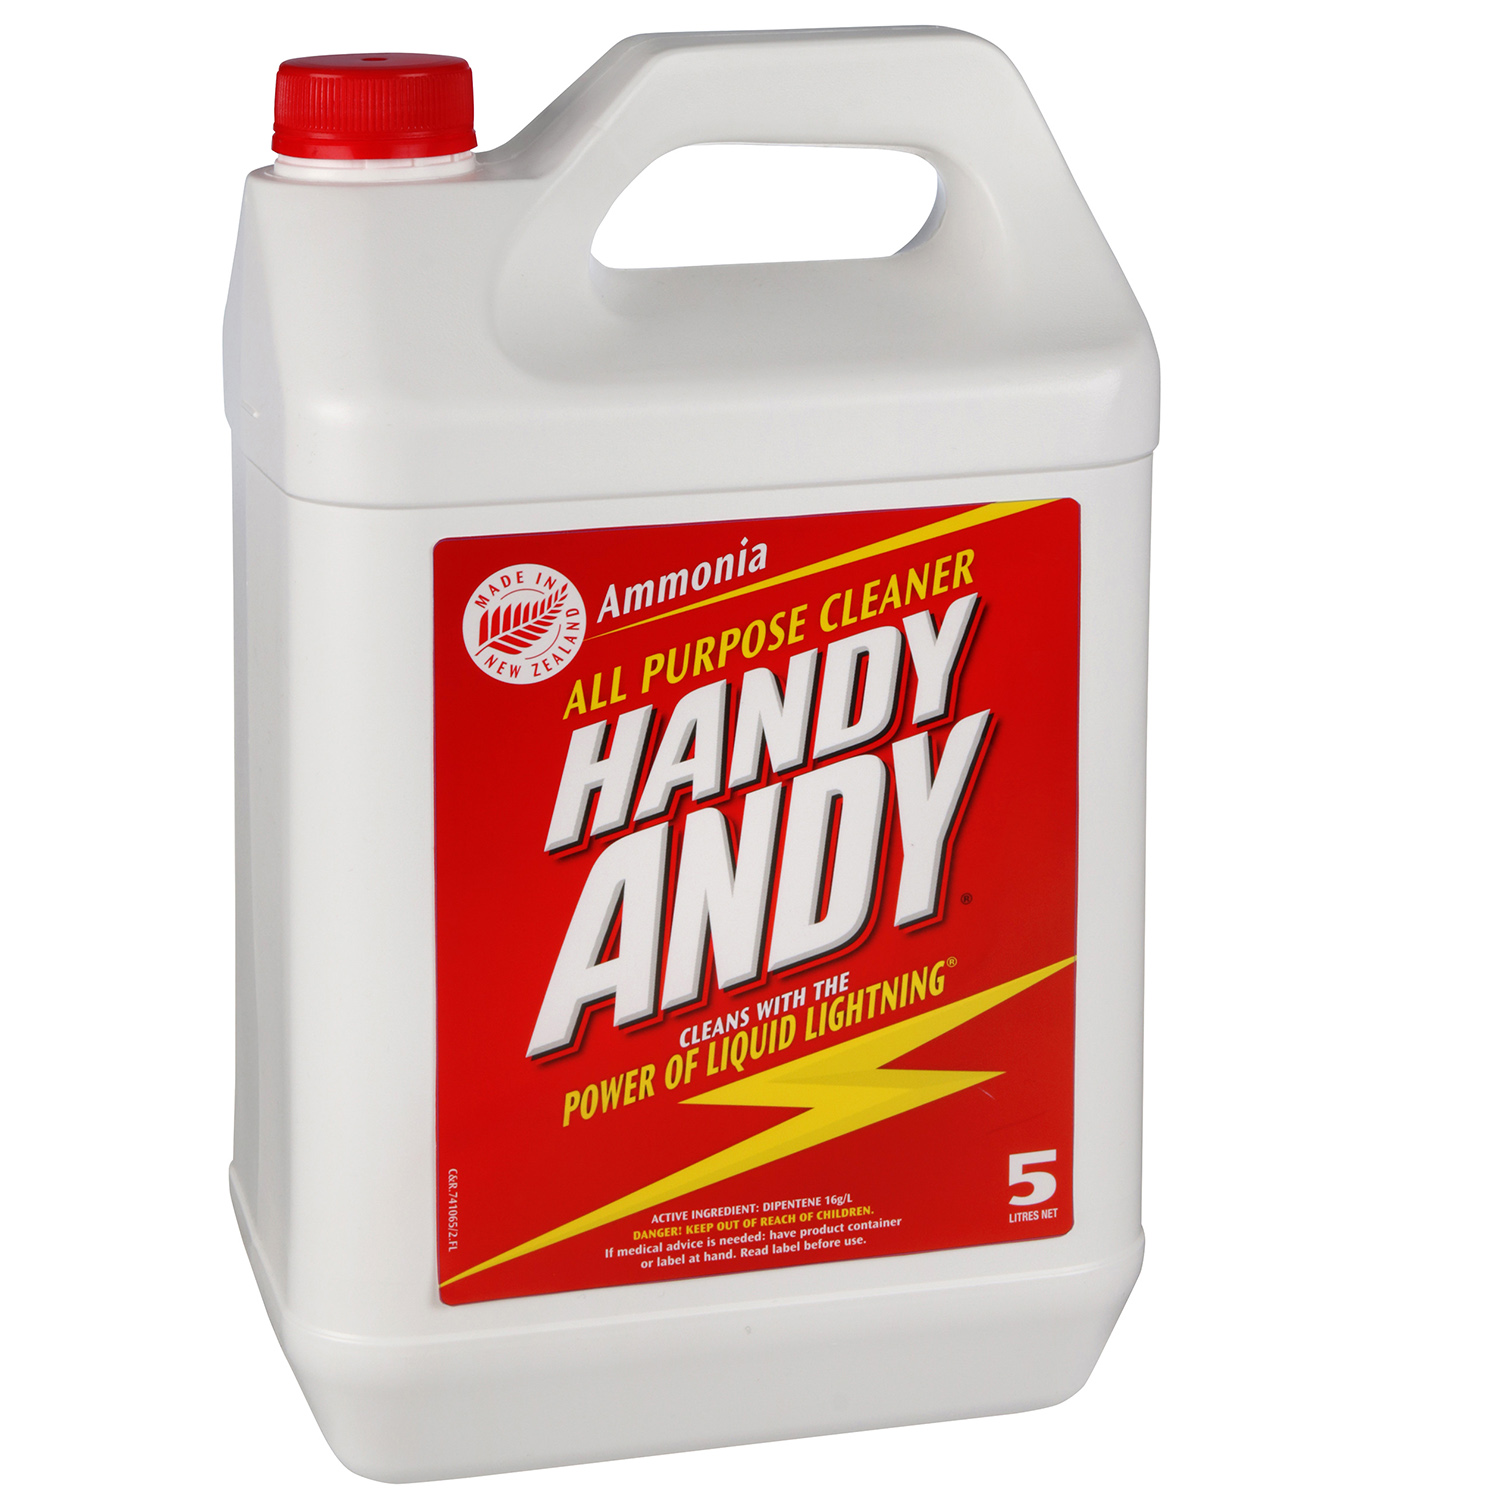 HANDY ANDY All Purpose Cleaner Regular 5 Litre